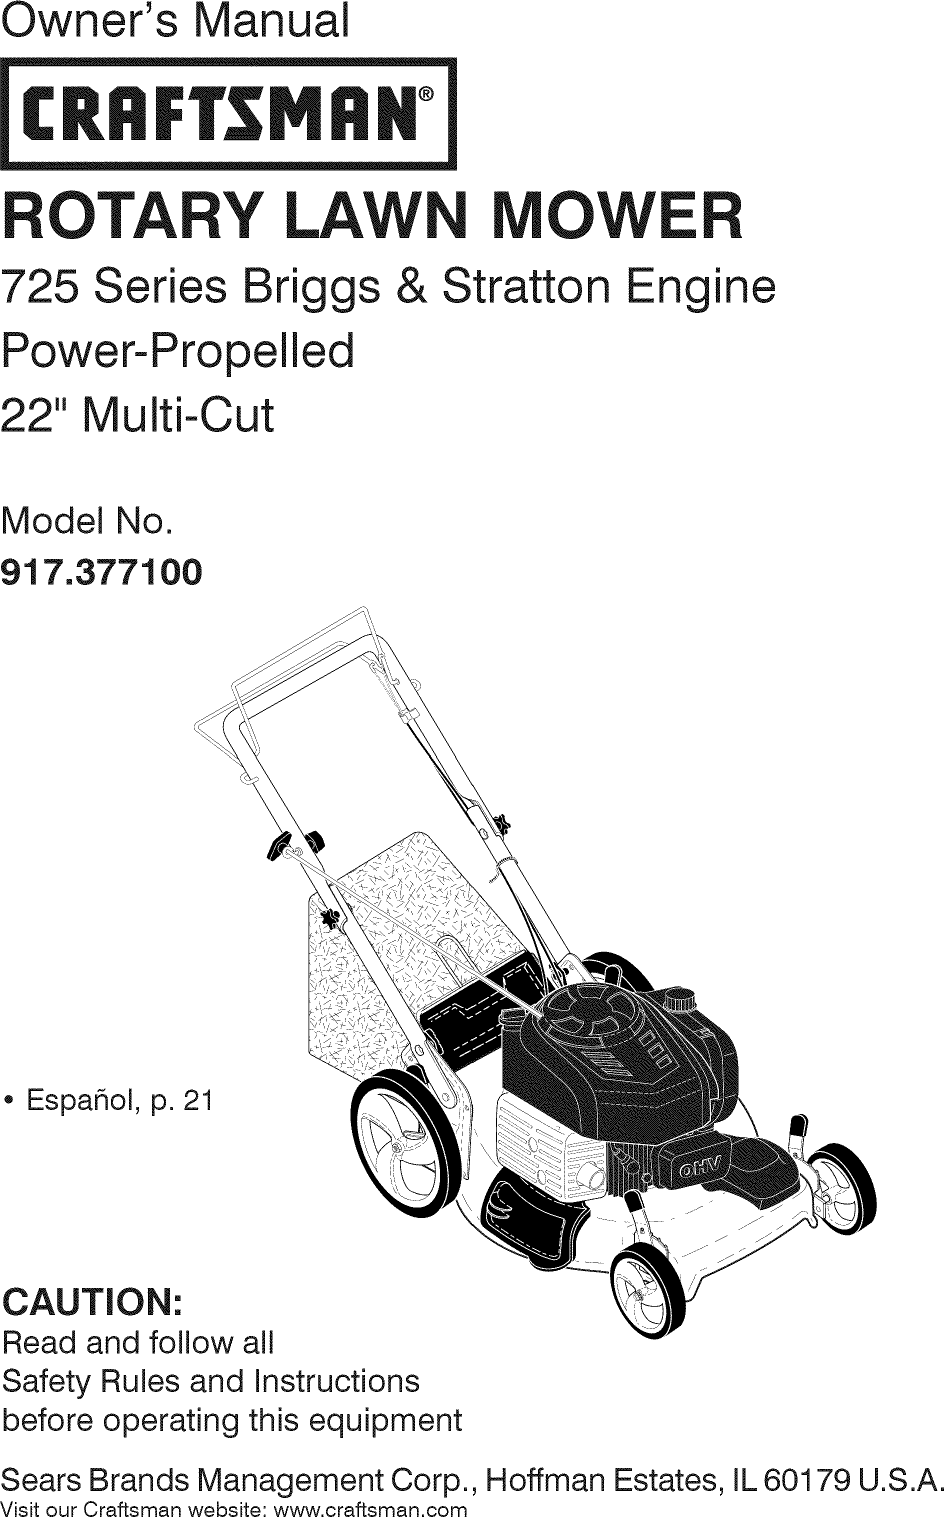 Craftsman 917377100 1411347L User Manual LAWN MOWER